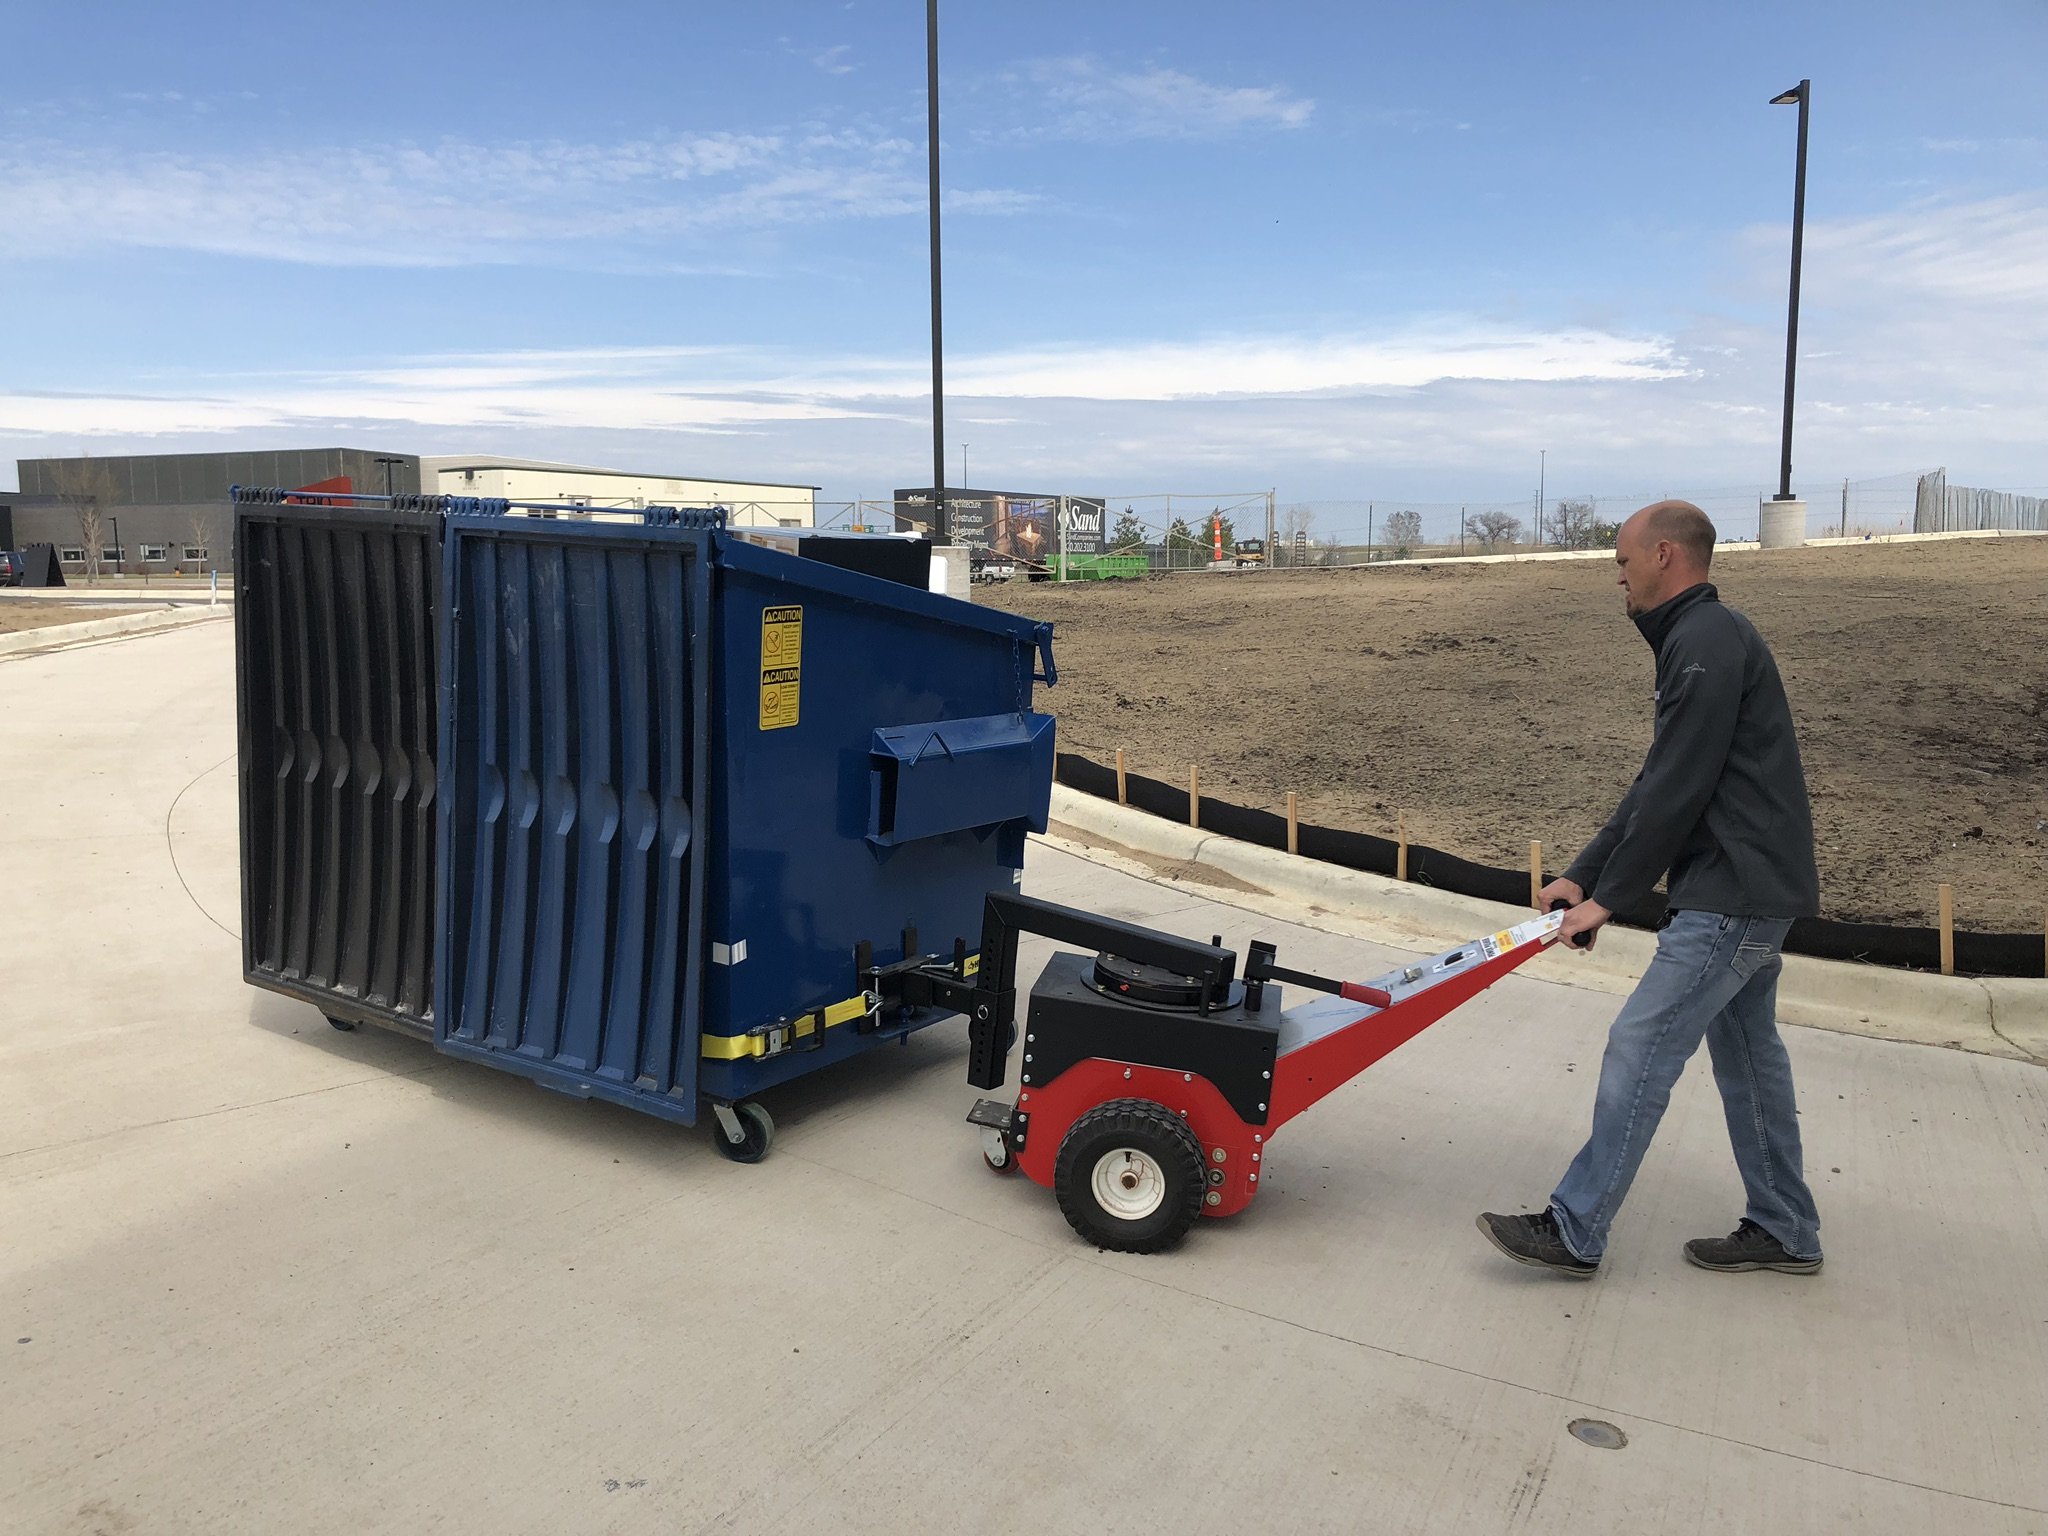 Electric Pusher for Dumpsters, Large Trash and Waste Bins